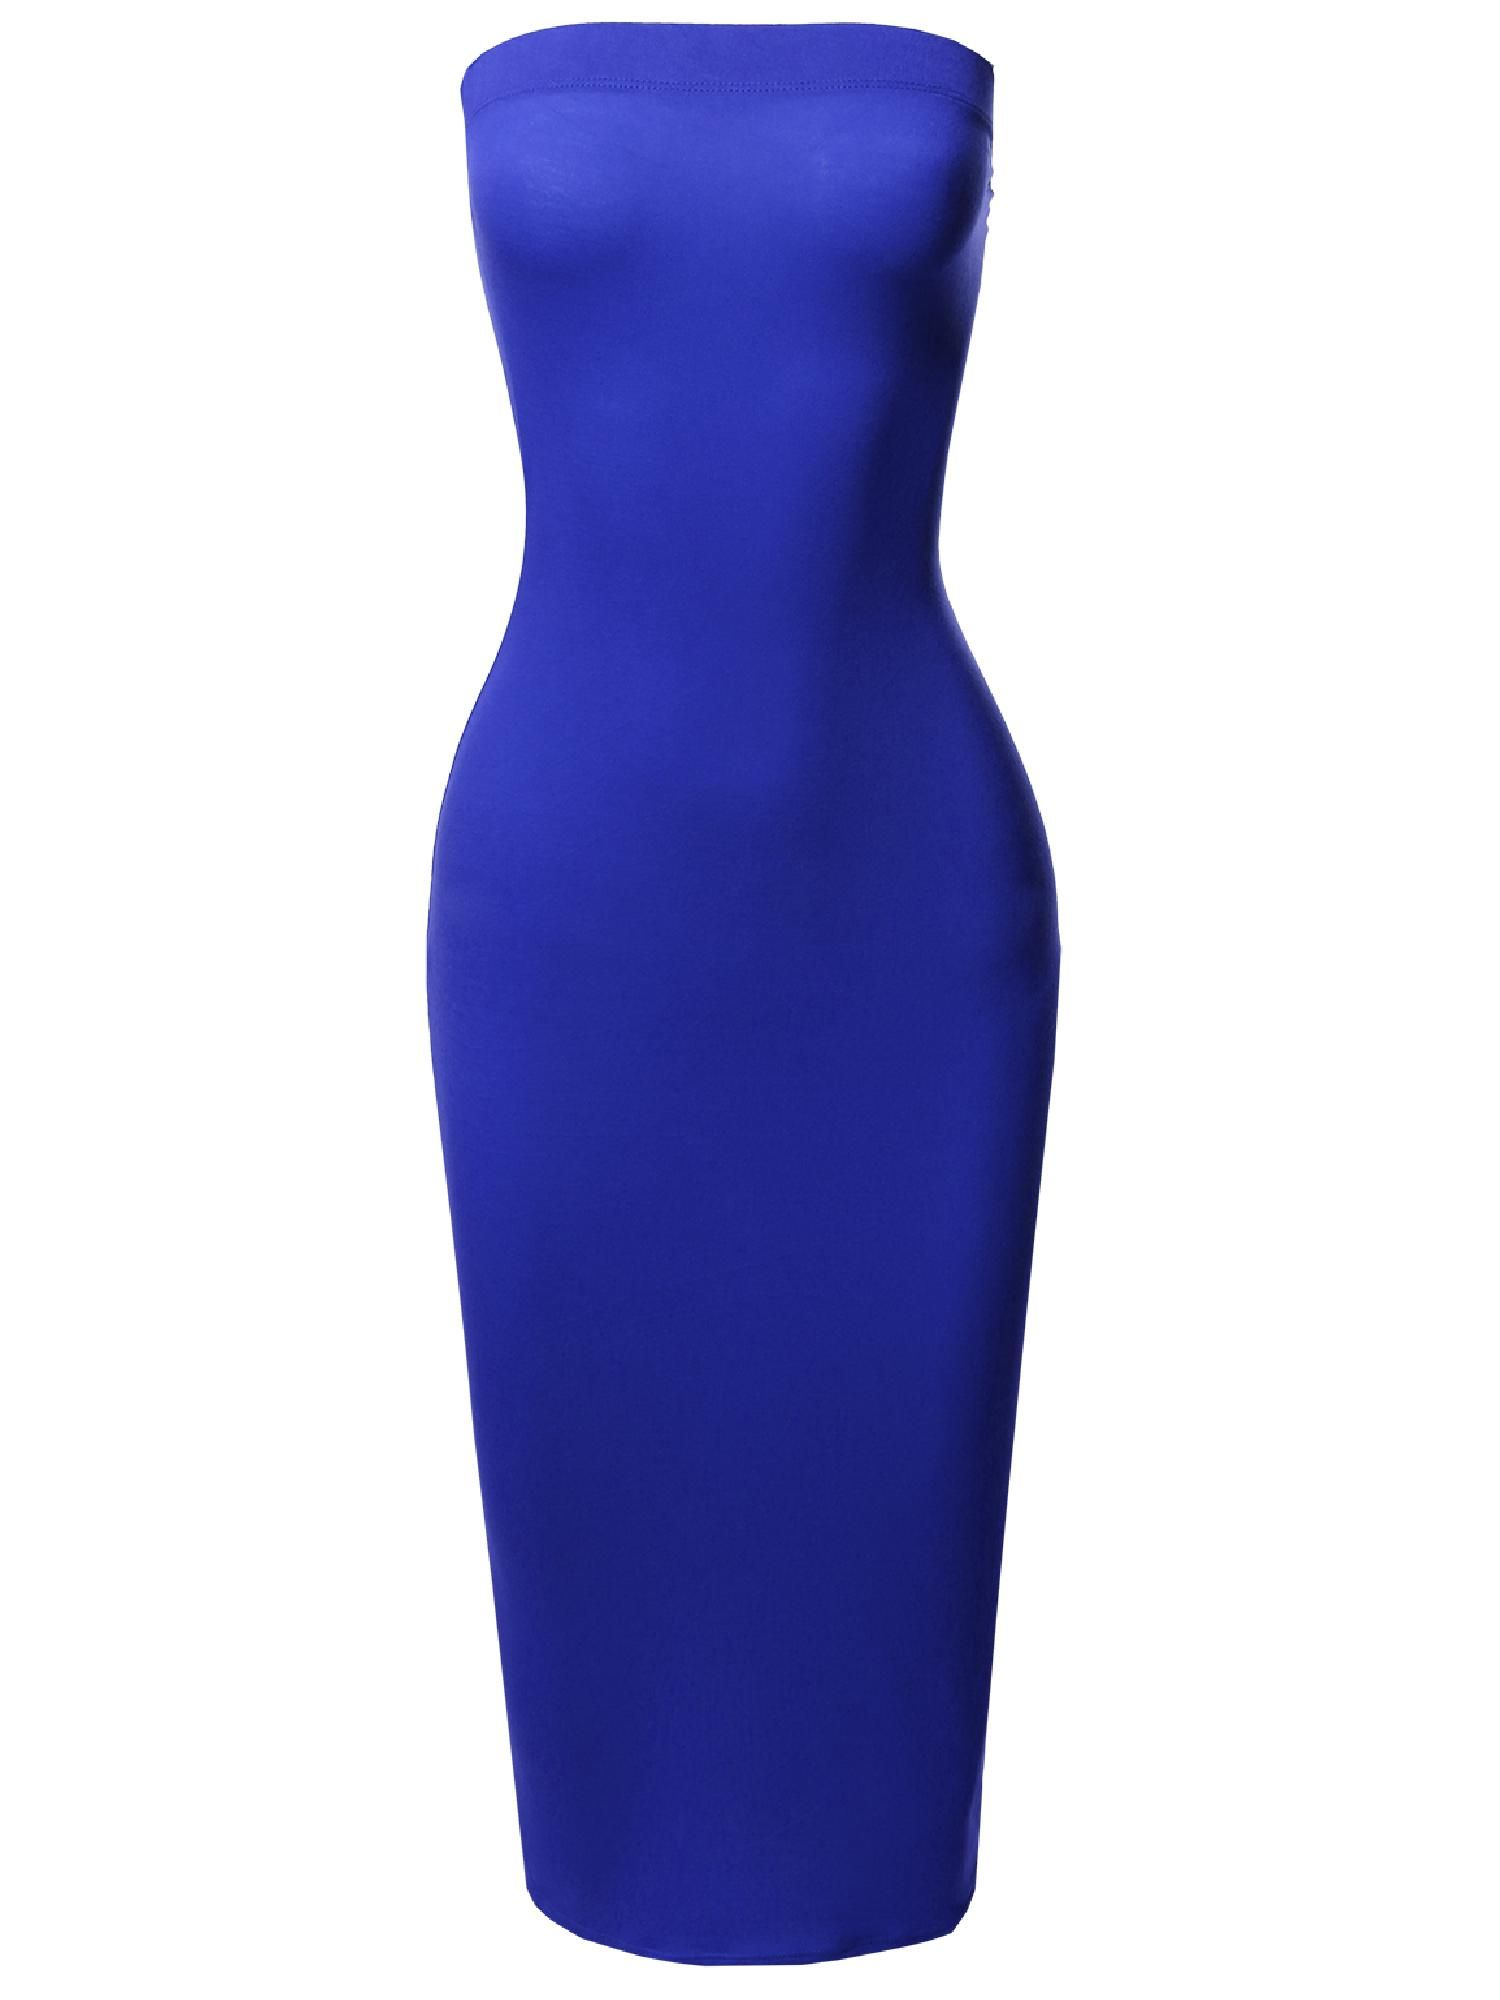 a8b5a10226a FashionOutfit Women s Solid Stretchable Body-Con Midi Tube Dress - Made in  USA Stretchable